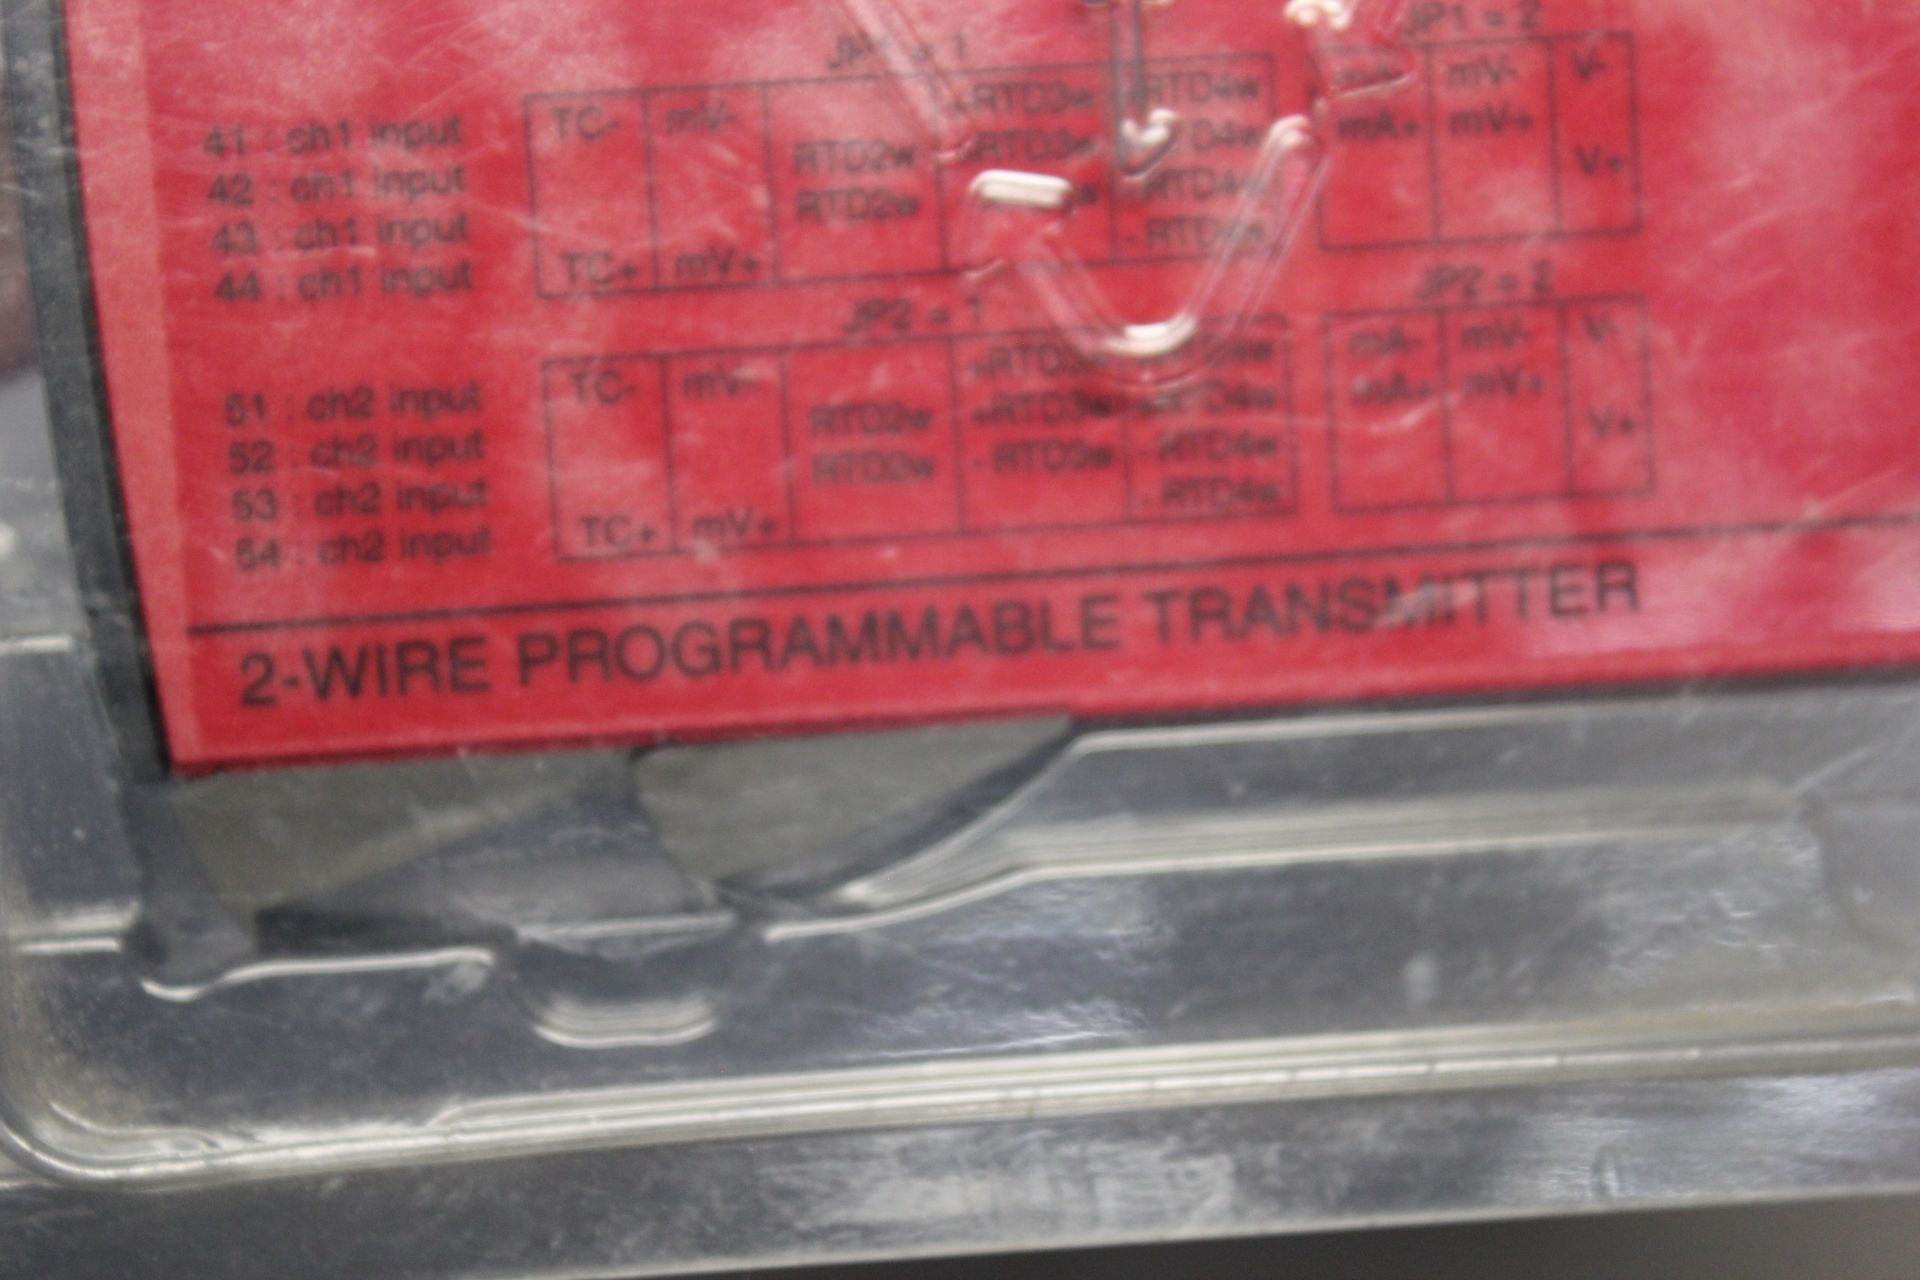 NEW PR ELECTRONICS 2 WIRE PROGRAMMABLE TRANSMITTER - Image 2 of 4